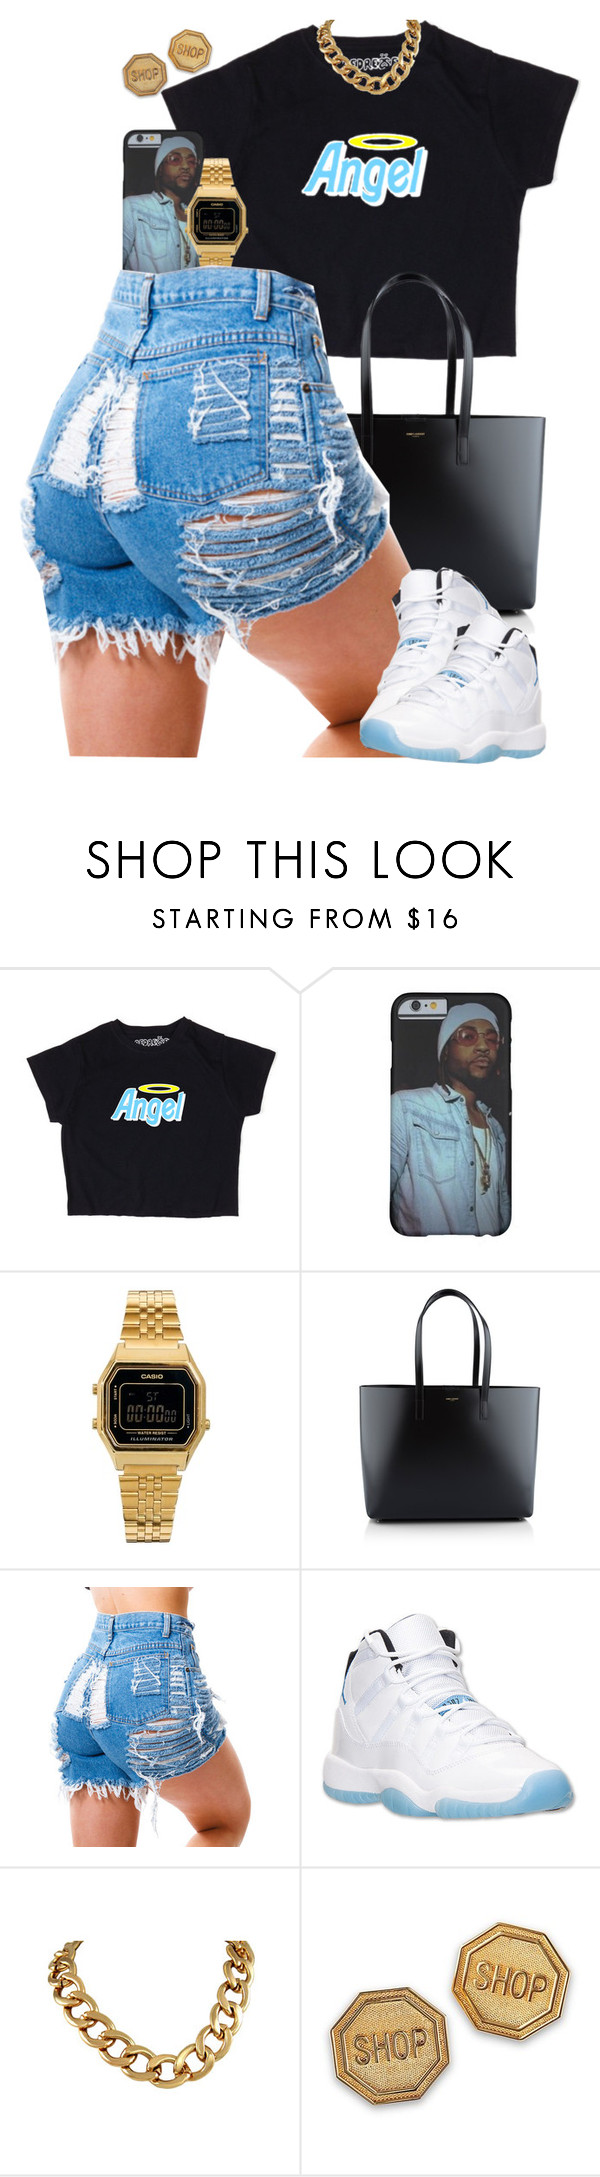 """Untitled #1582"" by power-beauty ❤ liked on Polyvore featuring Casio, Yves Saint Laurent, Retrò and Moschino"